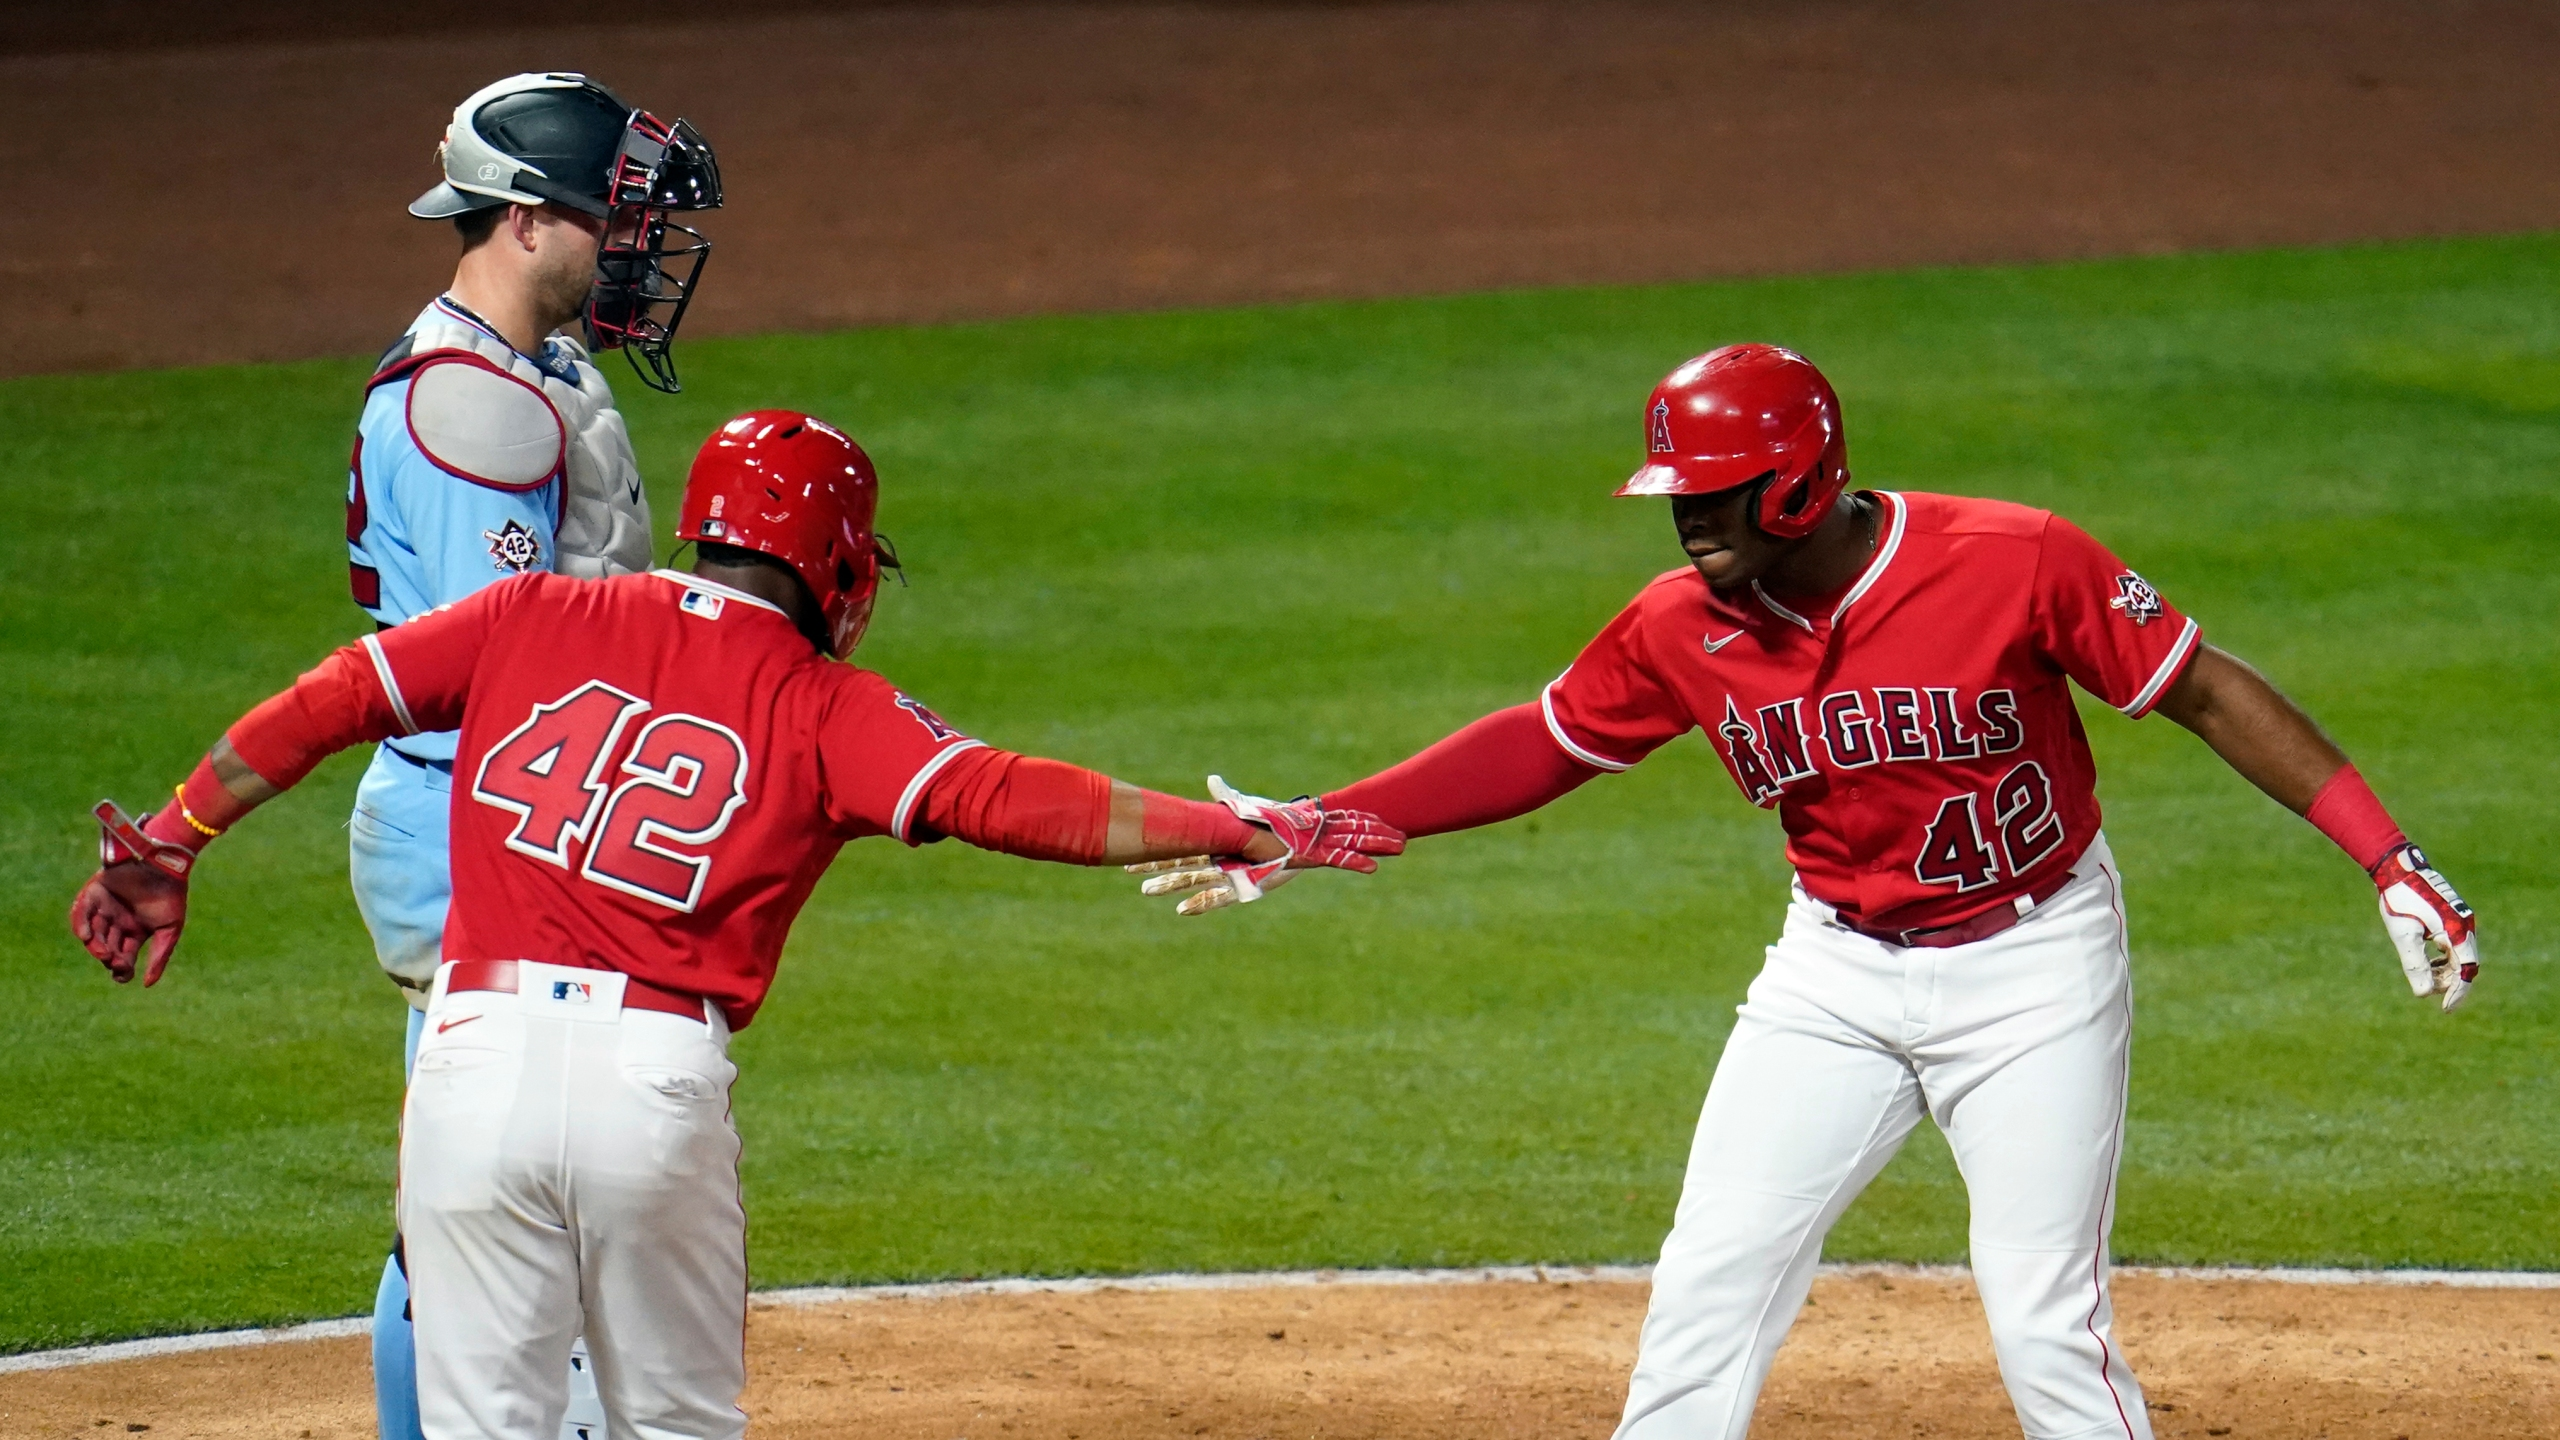 Los Angeles Angels' Justin Upton, right, celebrates his grand slam at home plate with Luis Rengifo during the seventh inning of a baseball game against the Minnesota Twins in Anaheim on April 16, 2021. (Marcio Jose Sanchez / Associated Press)